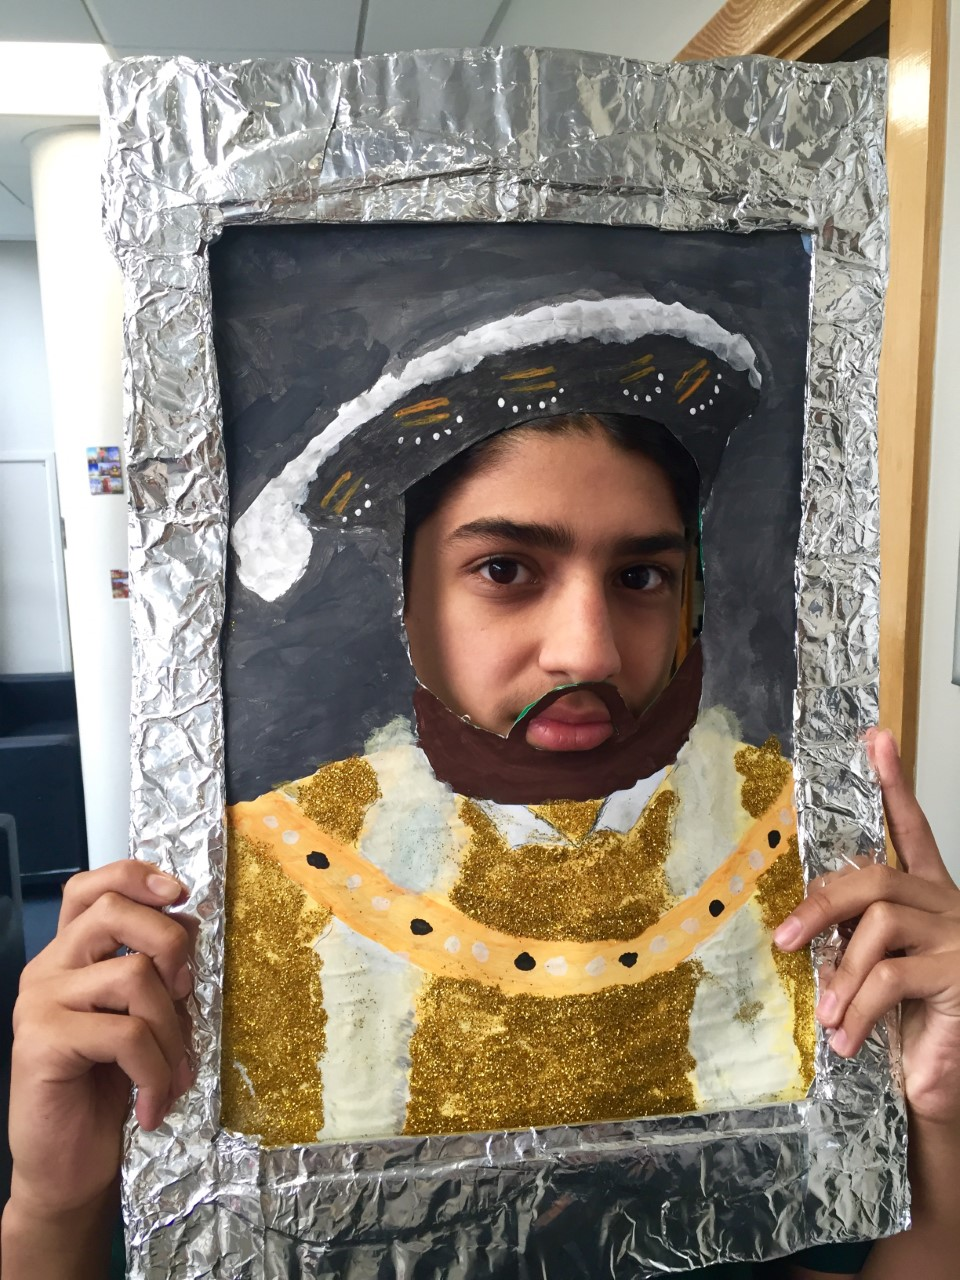 discovery summer queen s gate presentation day and finally our teens had created some amazing portraits during the week and played the roles of kings and queens excellently